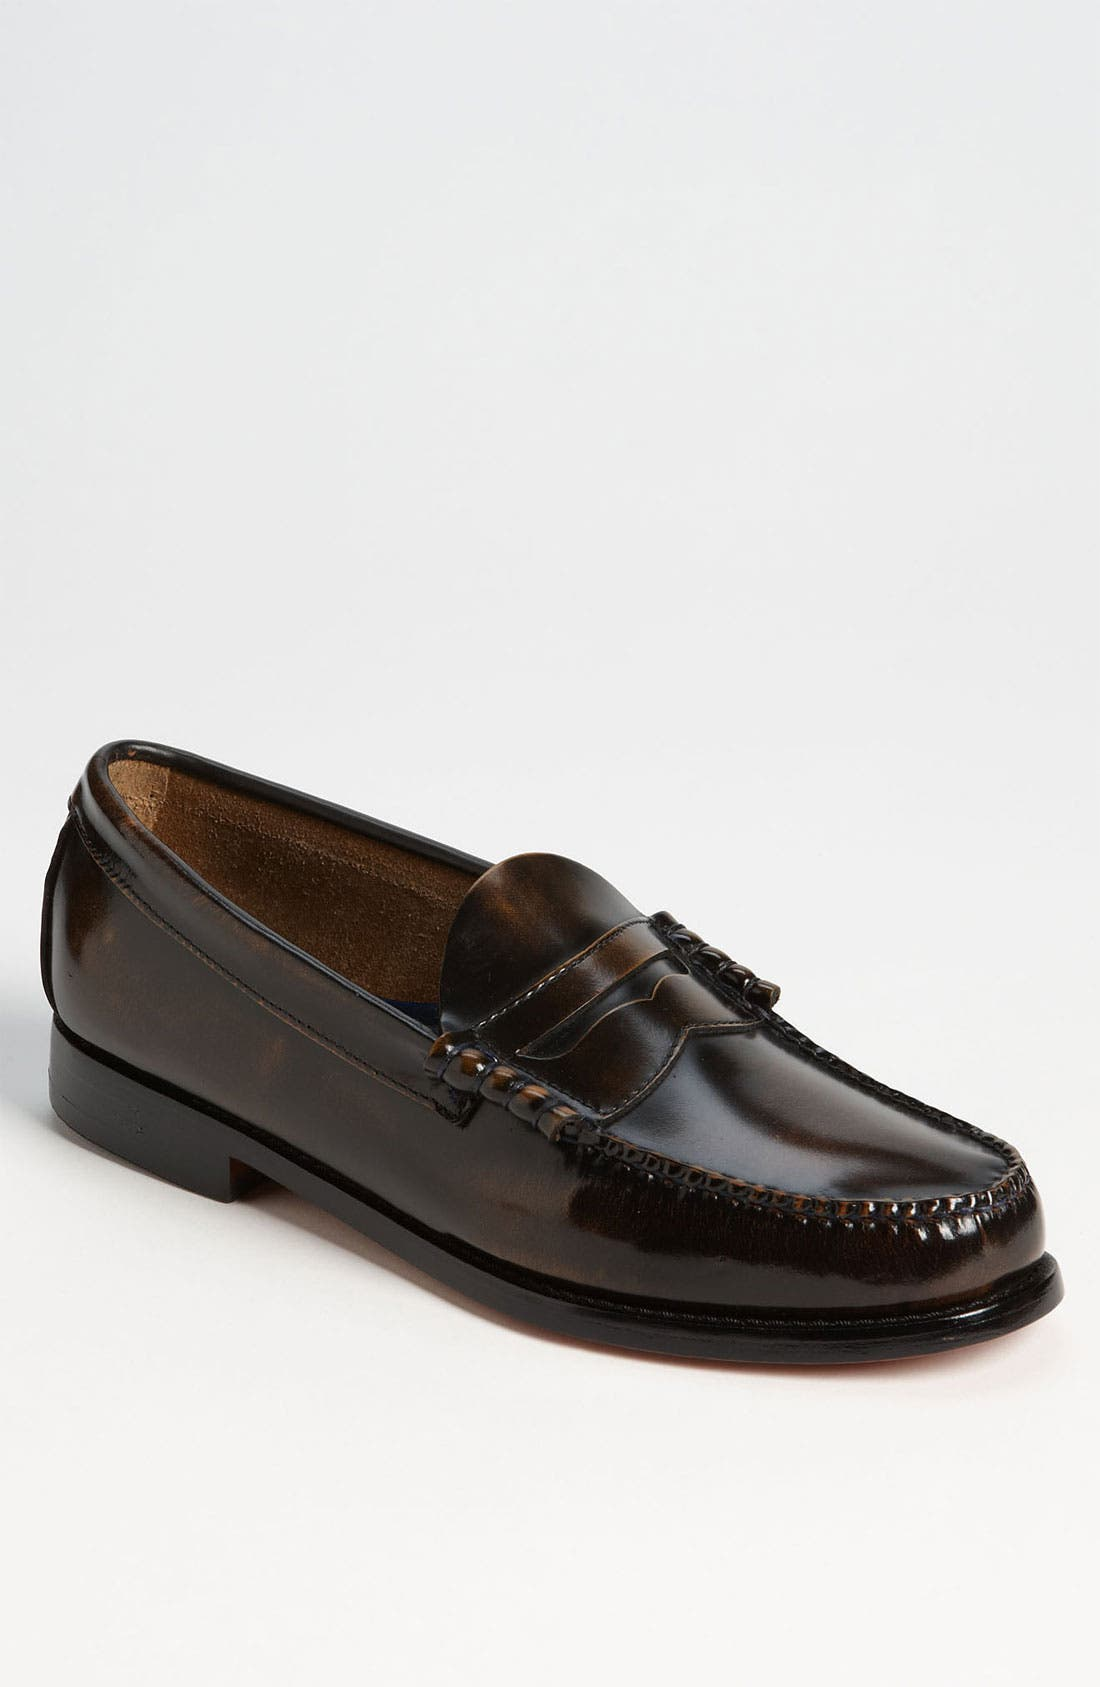 Alternate Image 1 Selected - G.H. Bass & Co. 'Weejuns - Larson' Beef Roll Loafer